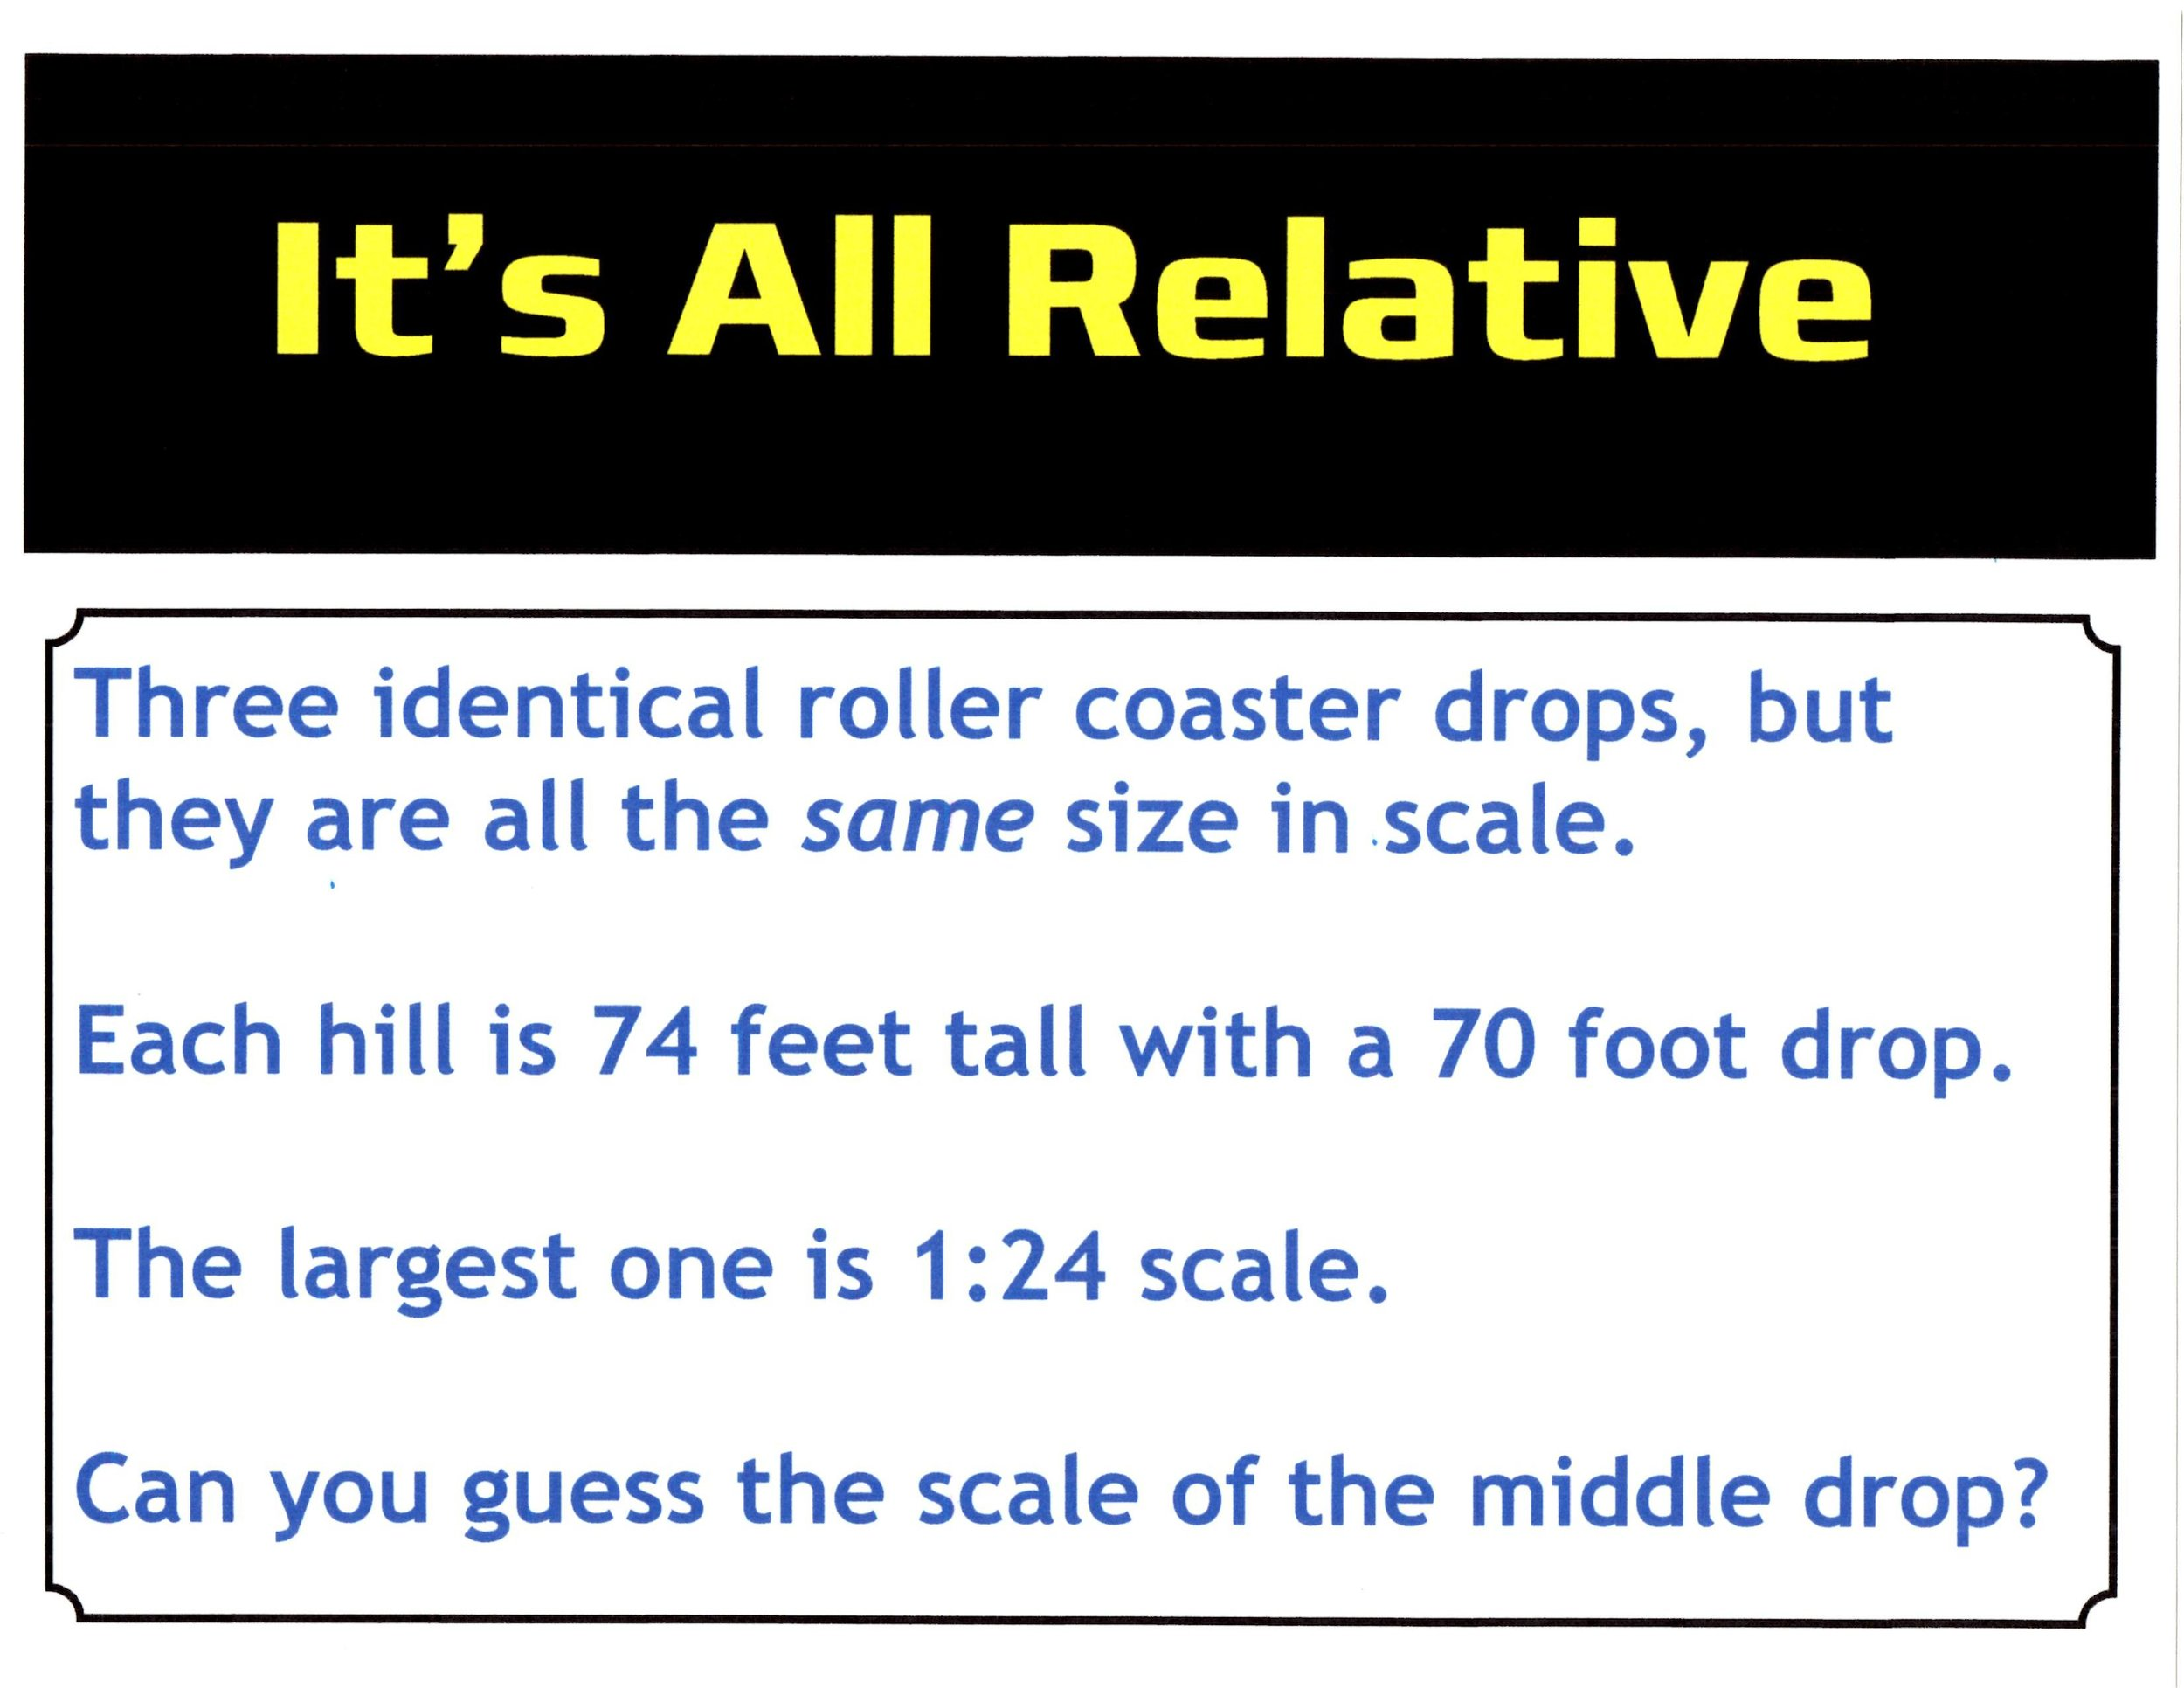 Exhibit: Scale: It's All Relative